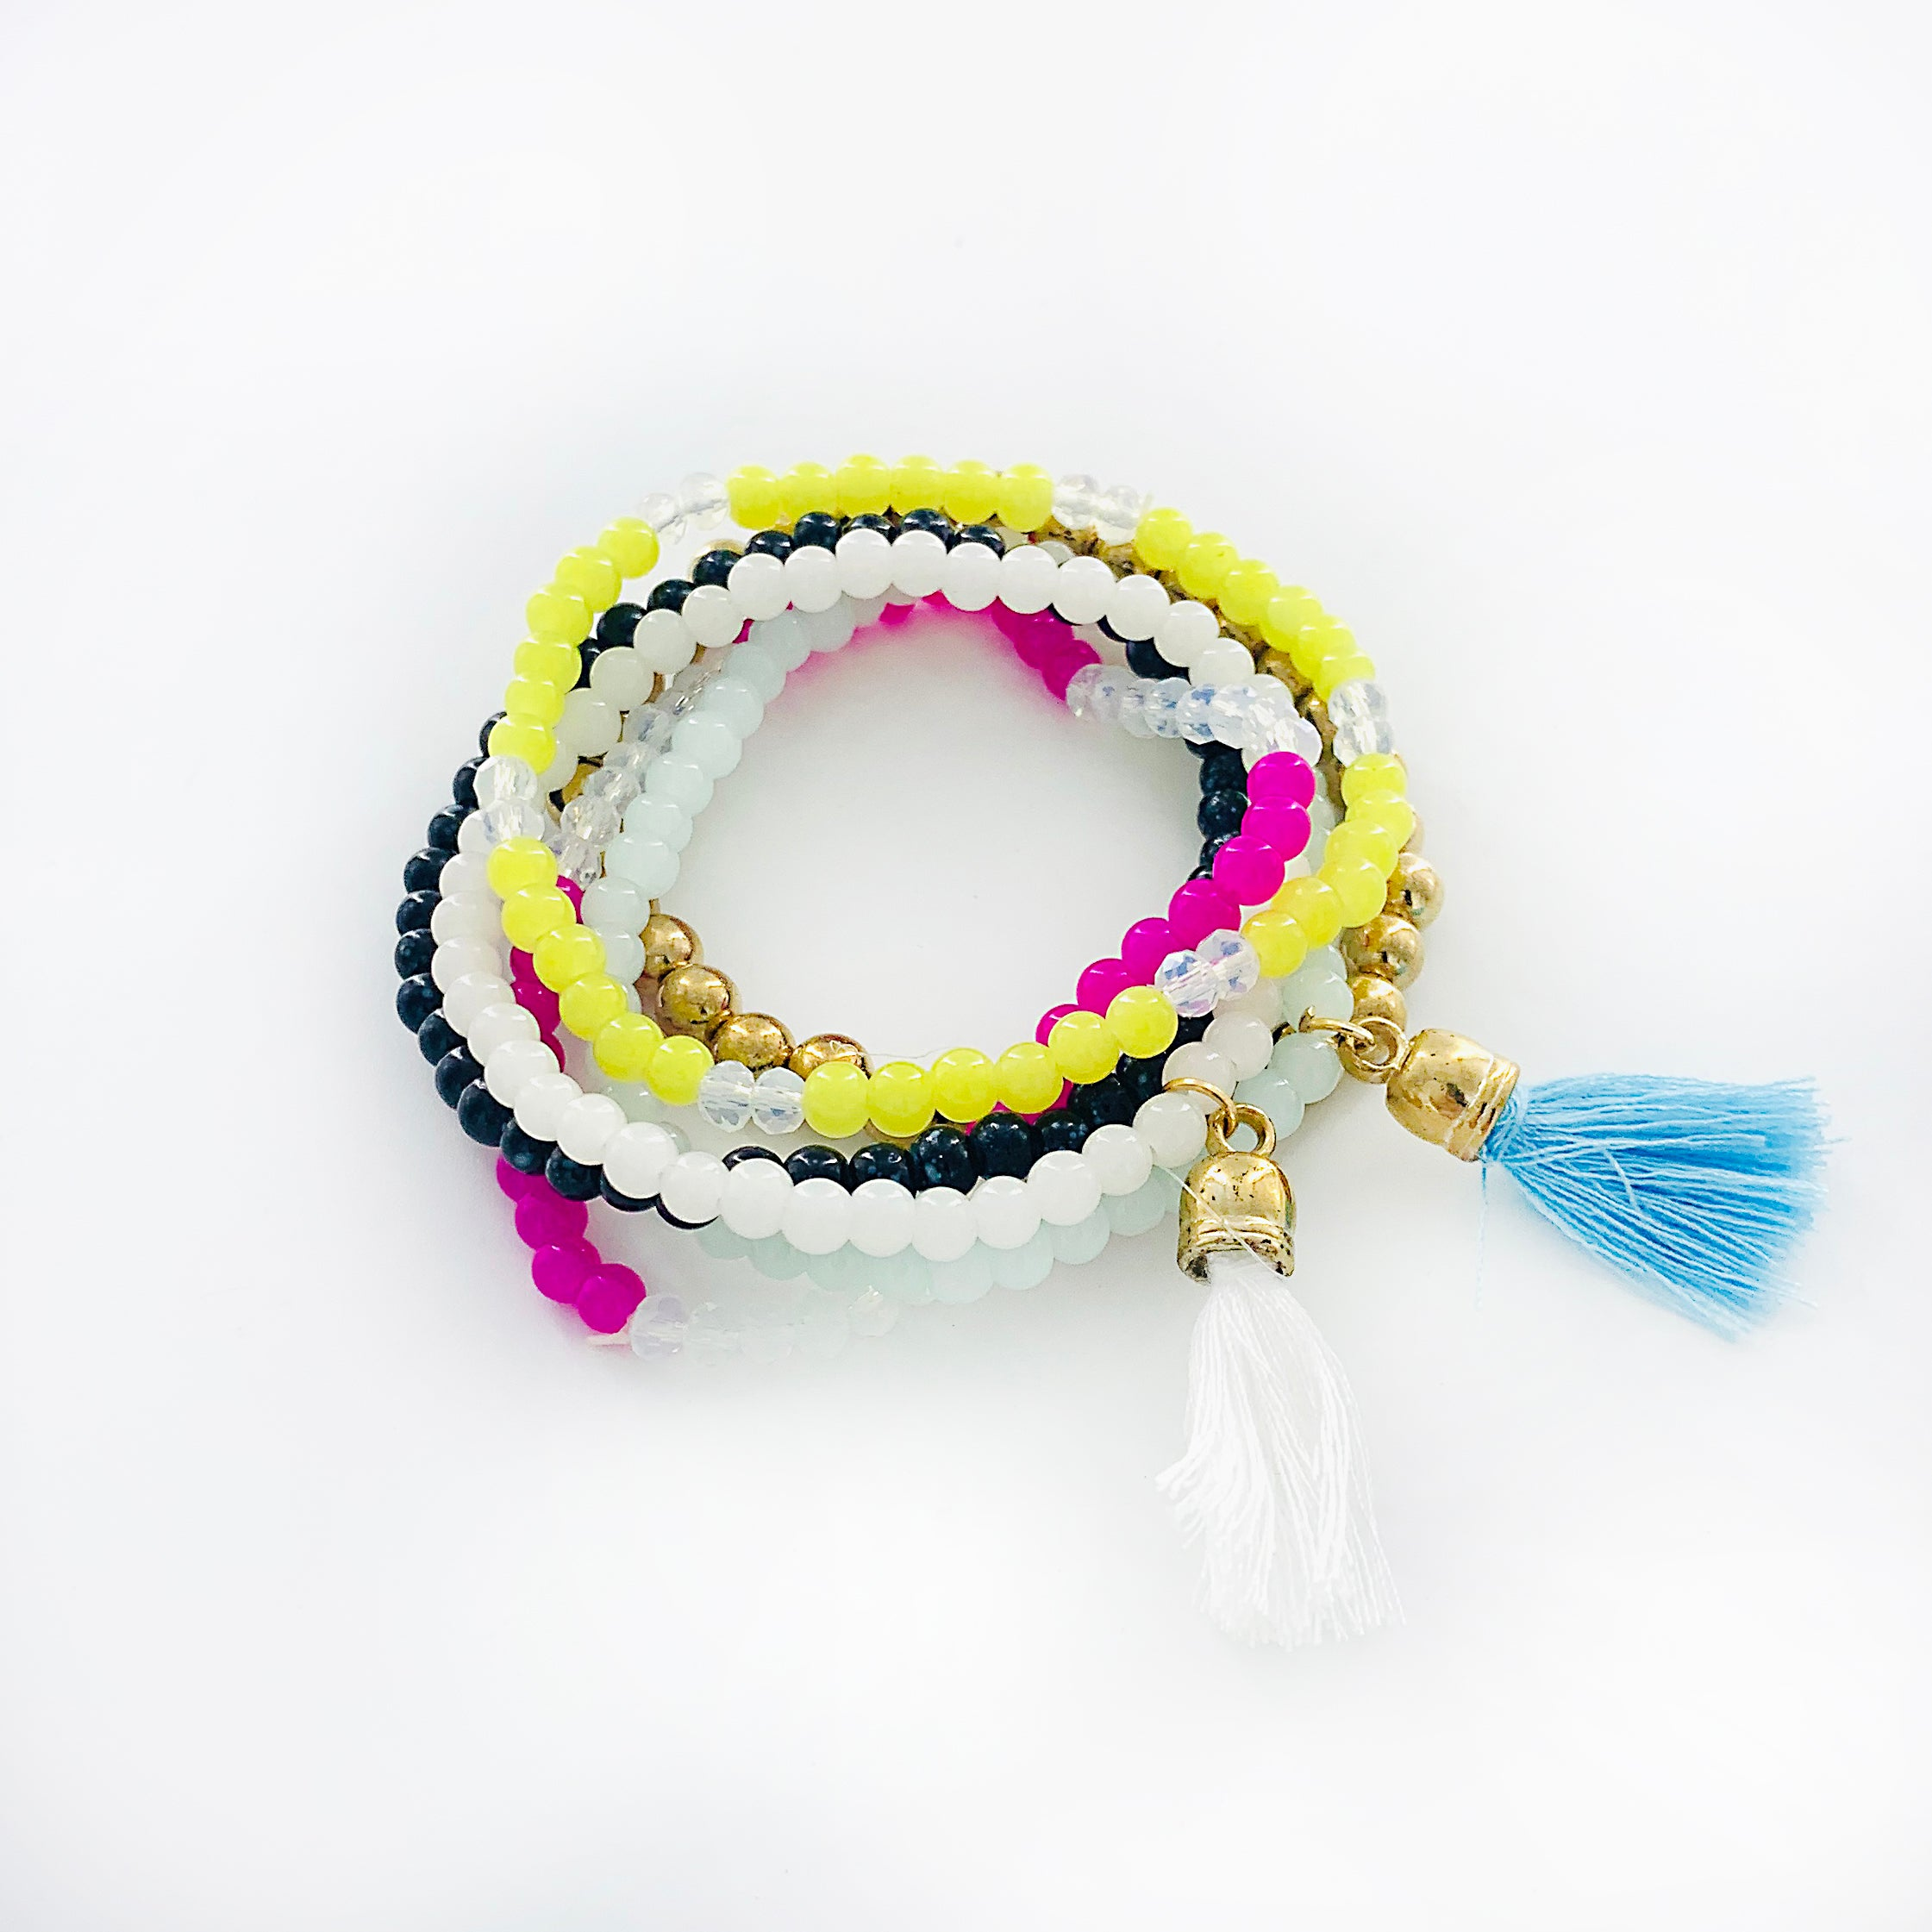 Multi-coloured beaded bracelet with tassel charms